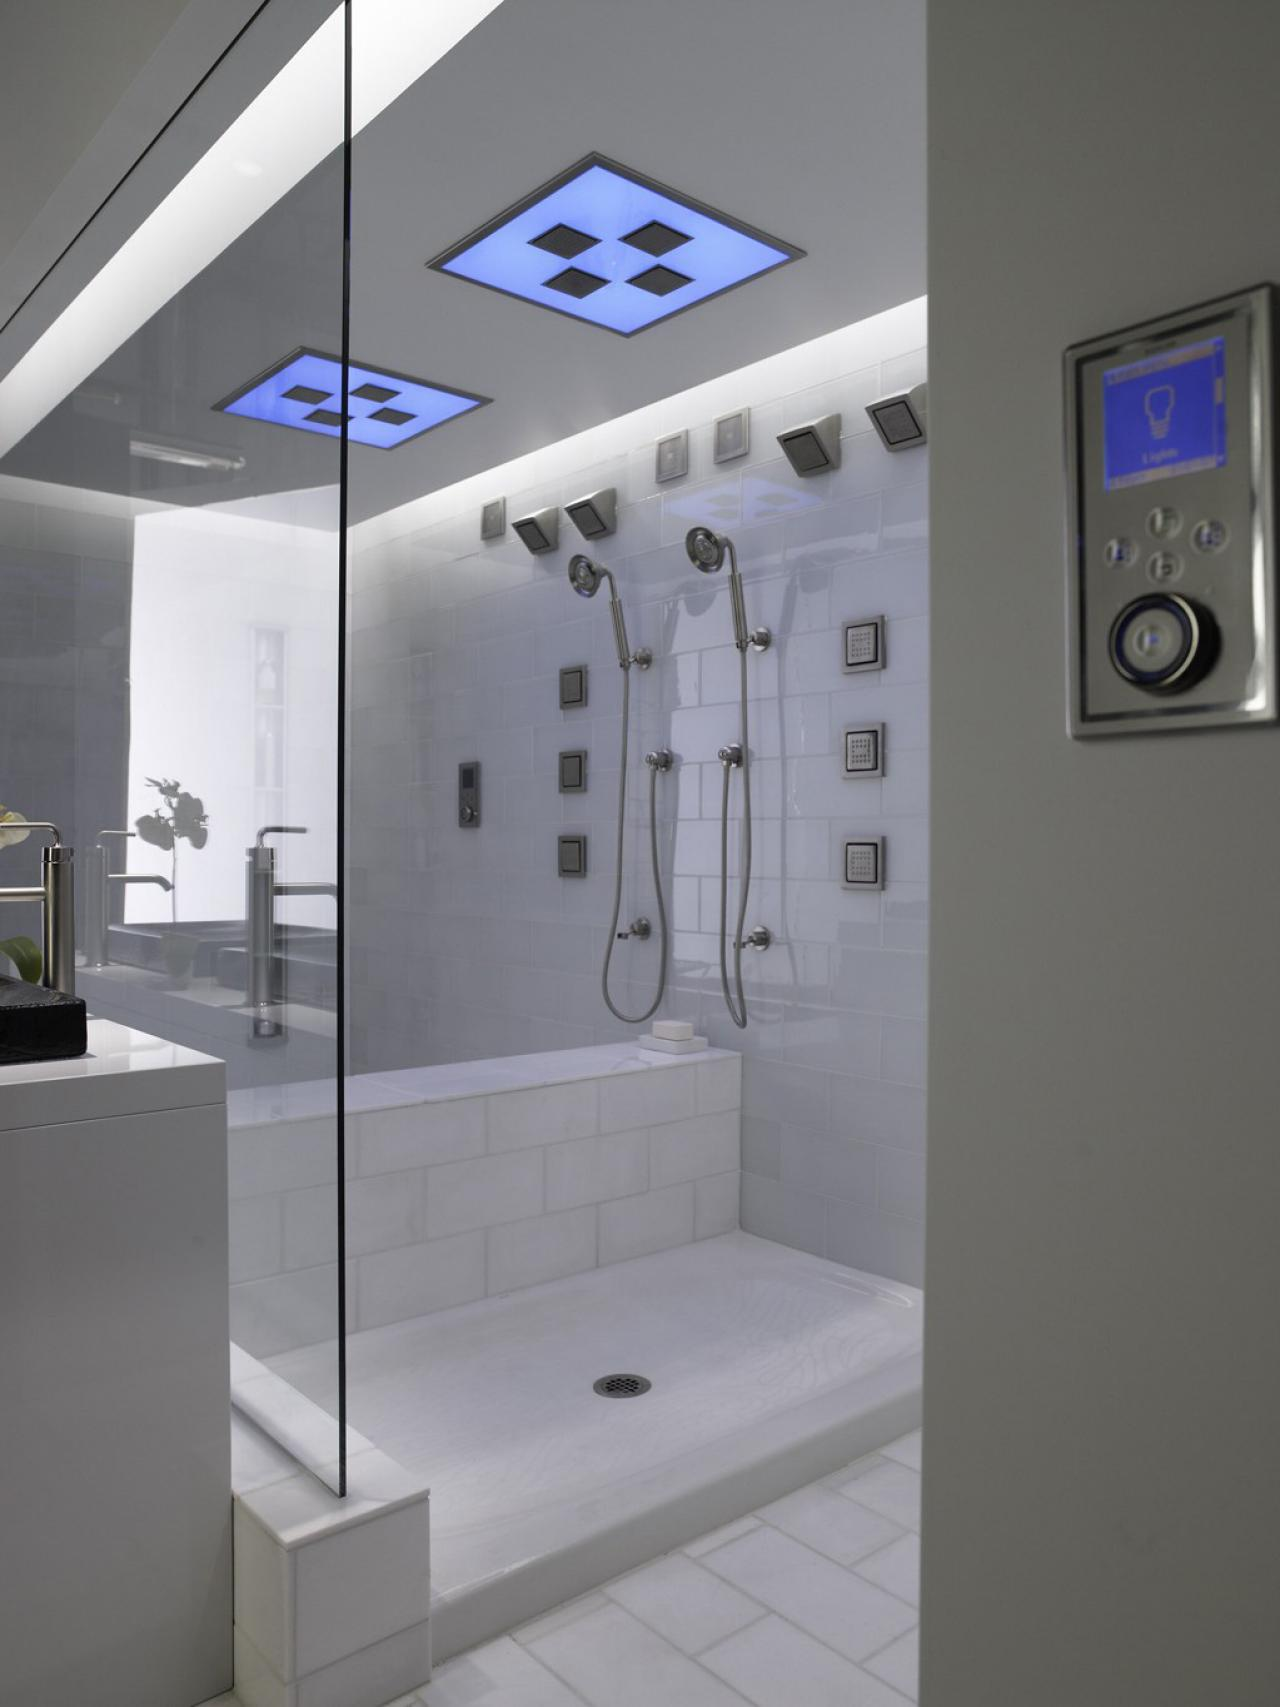 Bathroom Remodel Ideas Kohler universal design showers: safety and luxury | hgtv